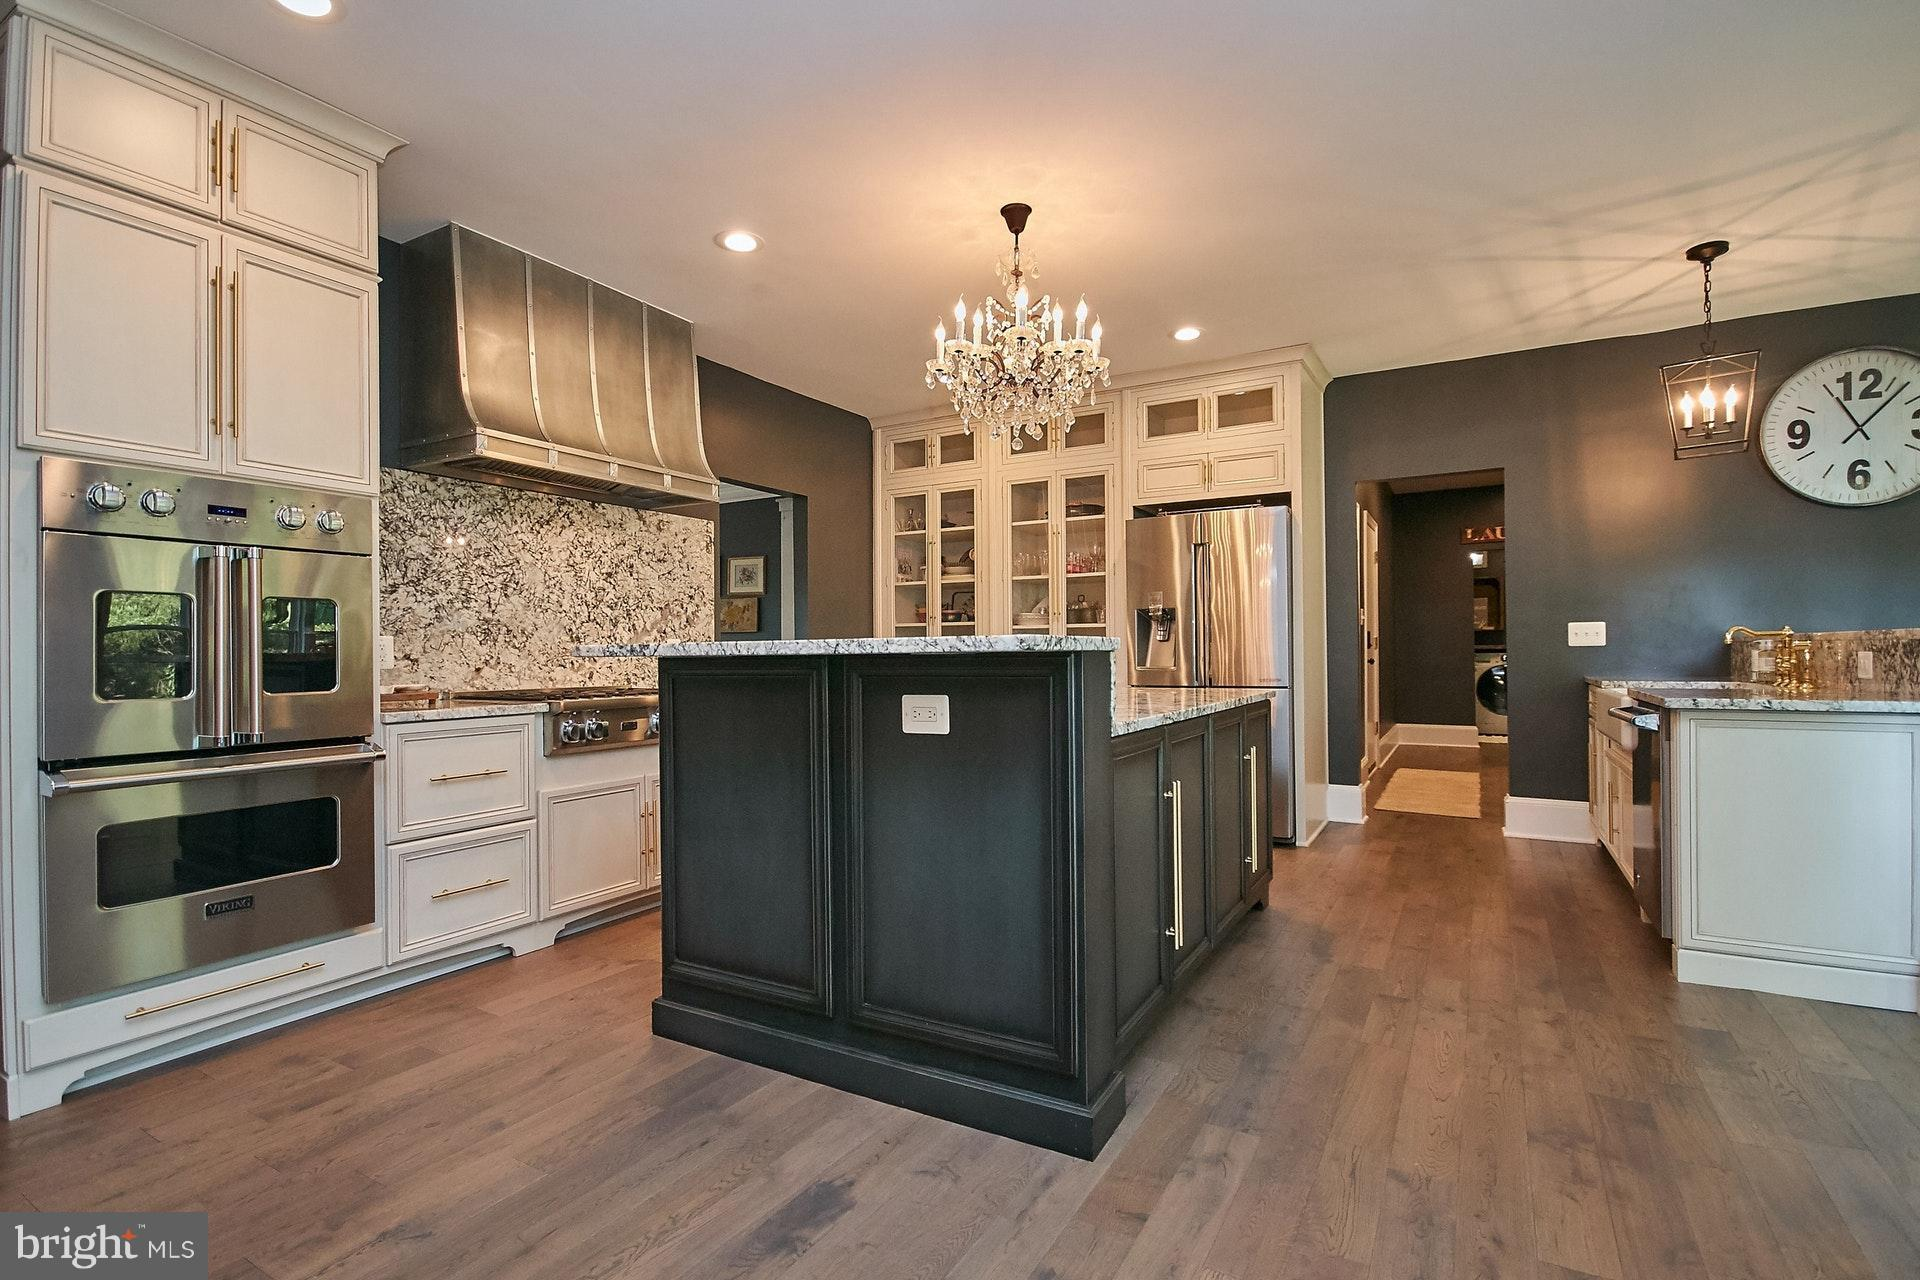 ***MOVE FAST!  HUGE PRICE DROP - BEST VALUE IN FAIRFAX STATION ON 5 AC! EXTRAORDINARY 4 BR, 3.5 BA SF W OVER $450K IN UPGRADES!  EVERYTHING HAS BEEN REMODELED TOP TO BOTTOM, ON 3 FIN'D LVLS!  PREMIER COUNTRY SITING - PRIVACY, TRANQUILITY, W/ 2-HORSE BARN! YET JUST MINS TO MAJOR COMMUTER ROUTES!  RARE OPPTY TO OWN MOVE-IN READY FARMHOUSE CHIC HOME!  LOVELY IN-GROUND POOL SITS ON PRIV 5 ACRE LOT.